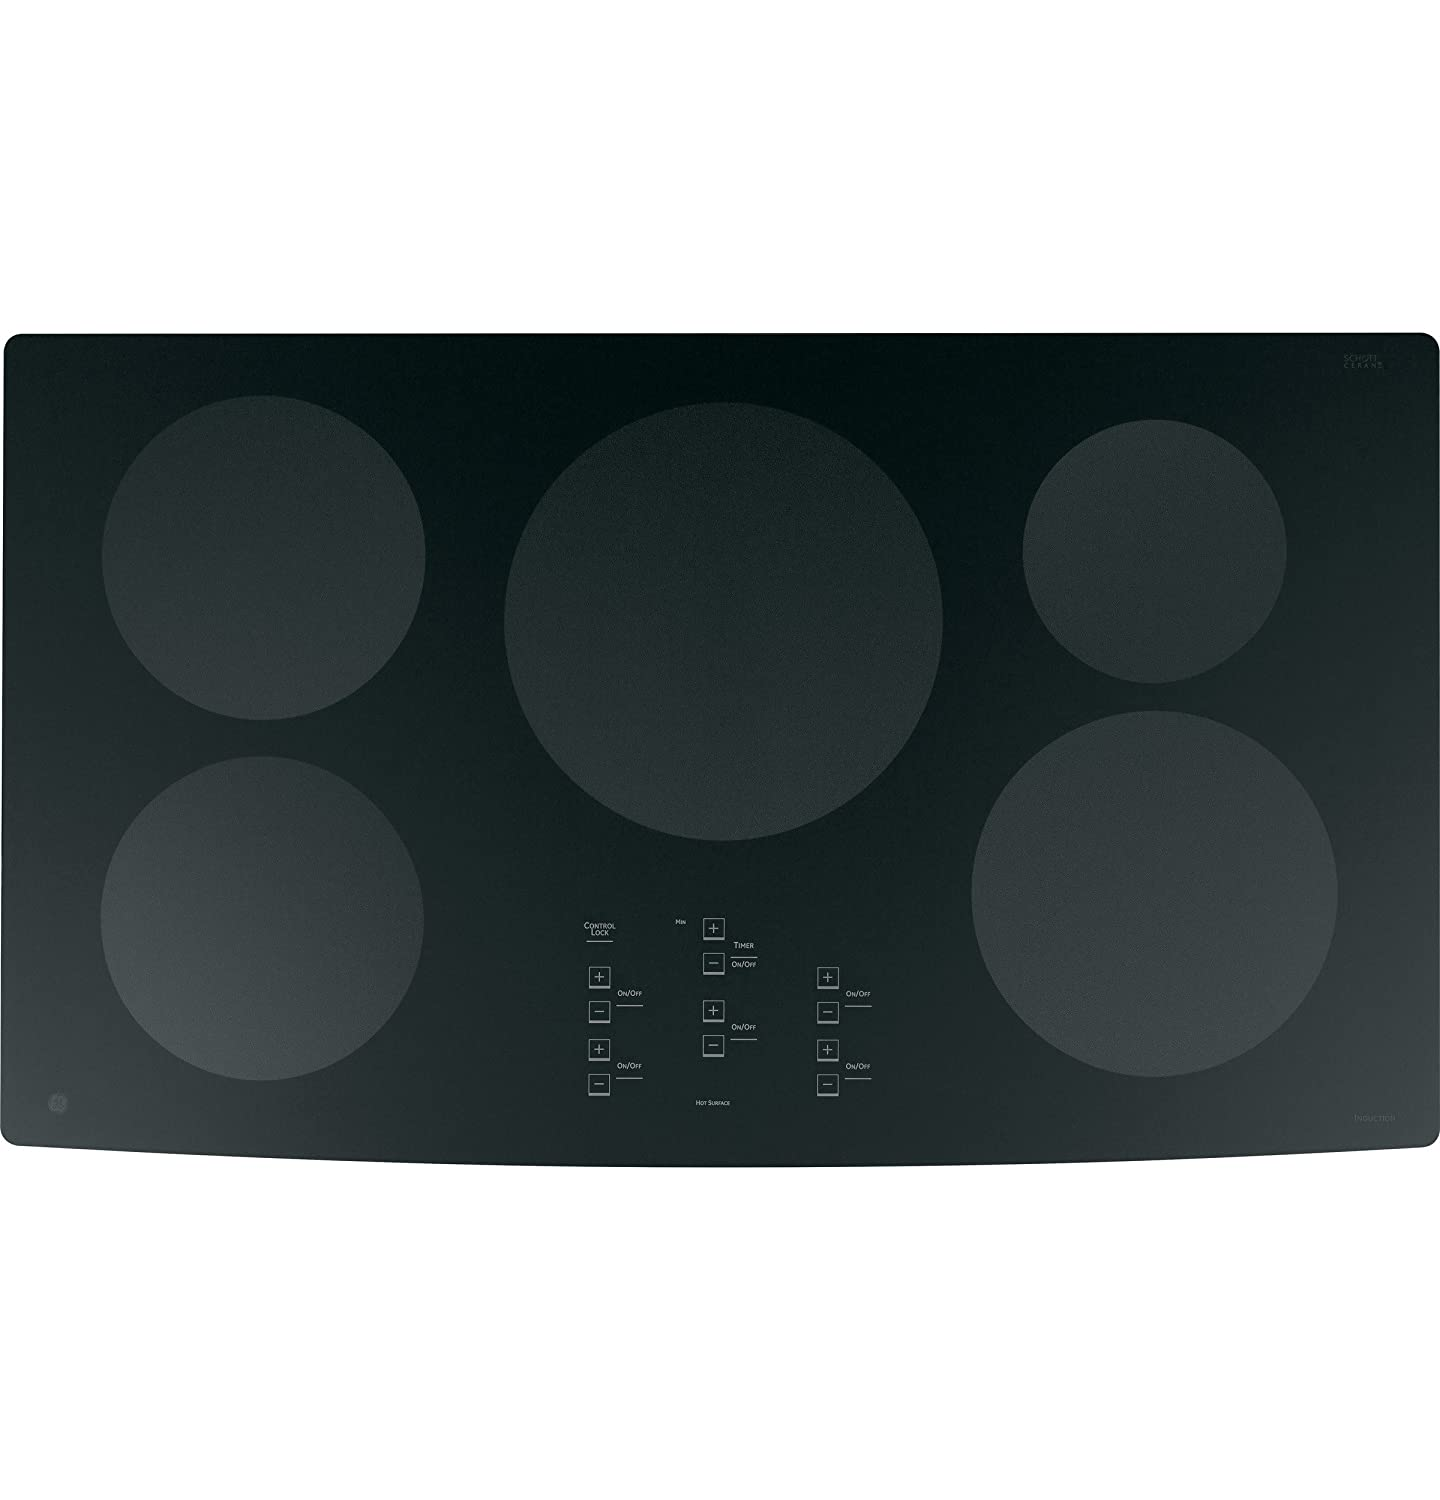 Top 10 Best Induction Cooktop Reviews in 2020 4